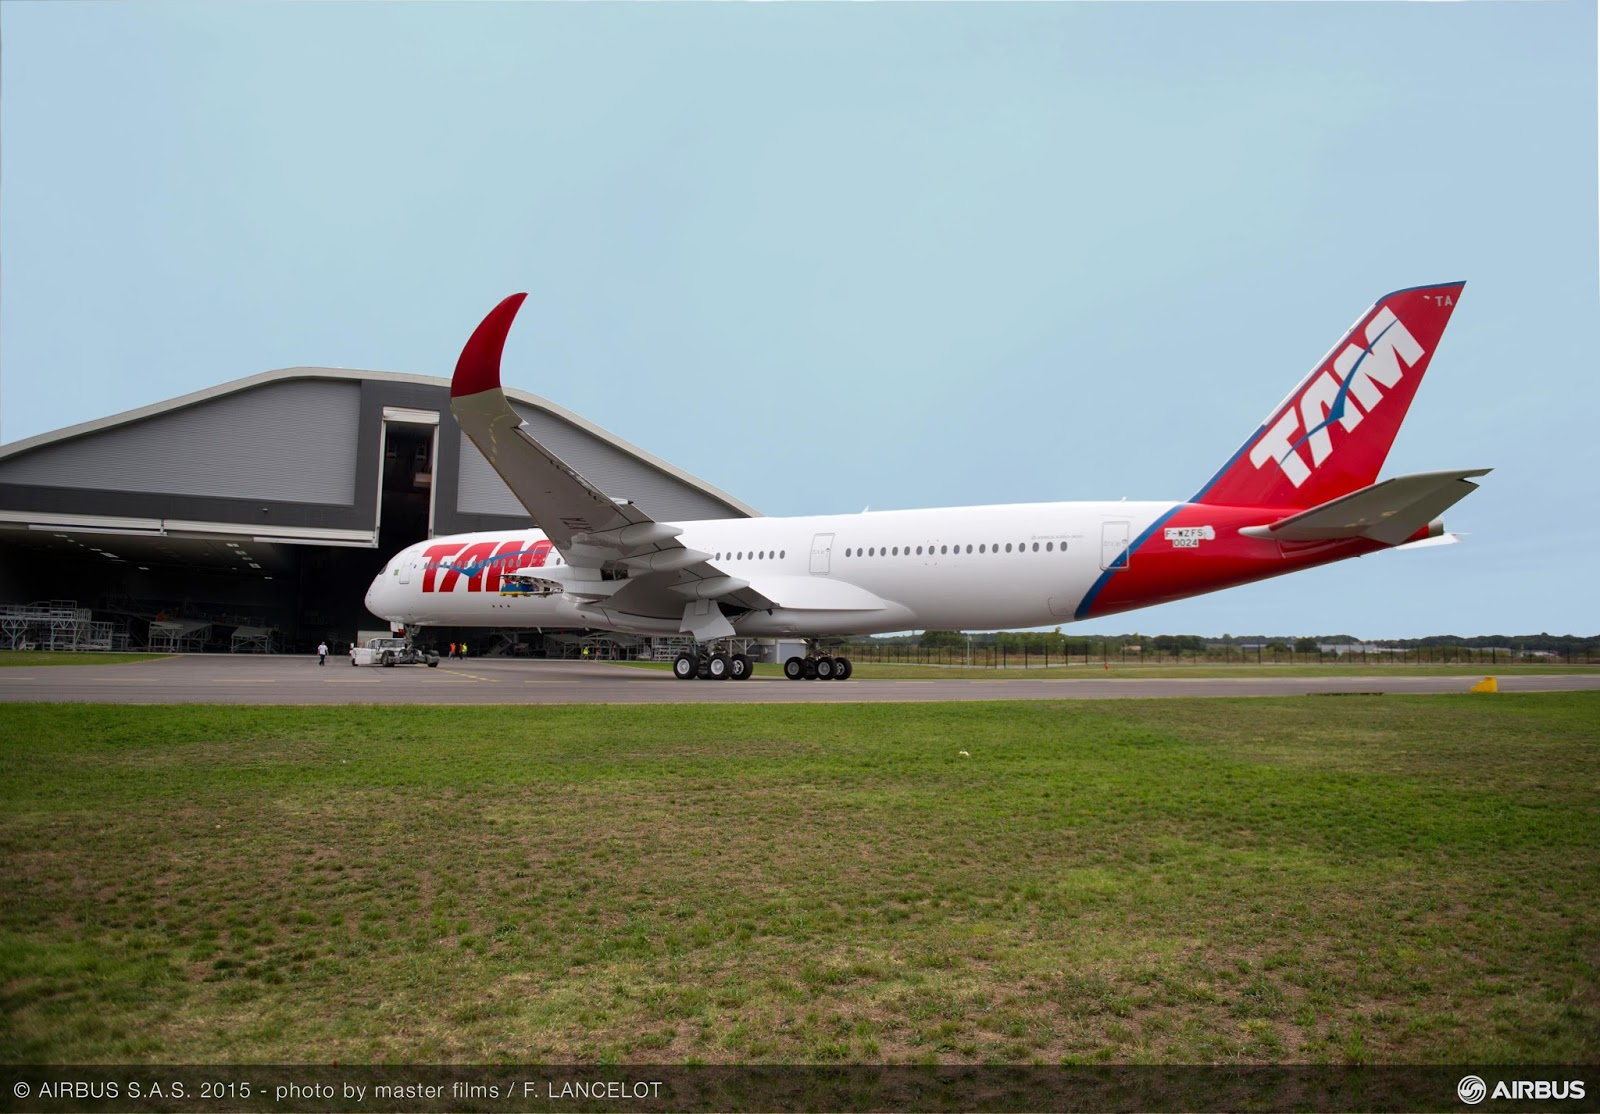 É MAIS QUE VOAR | TAM Airlines reveals their first A350 XWB